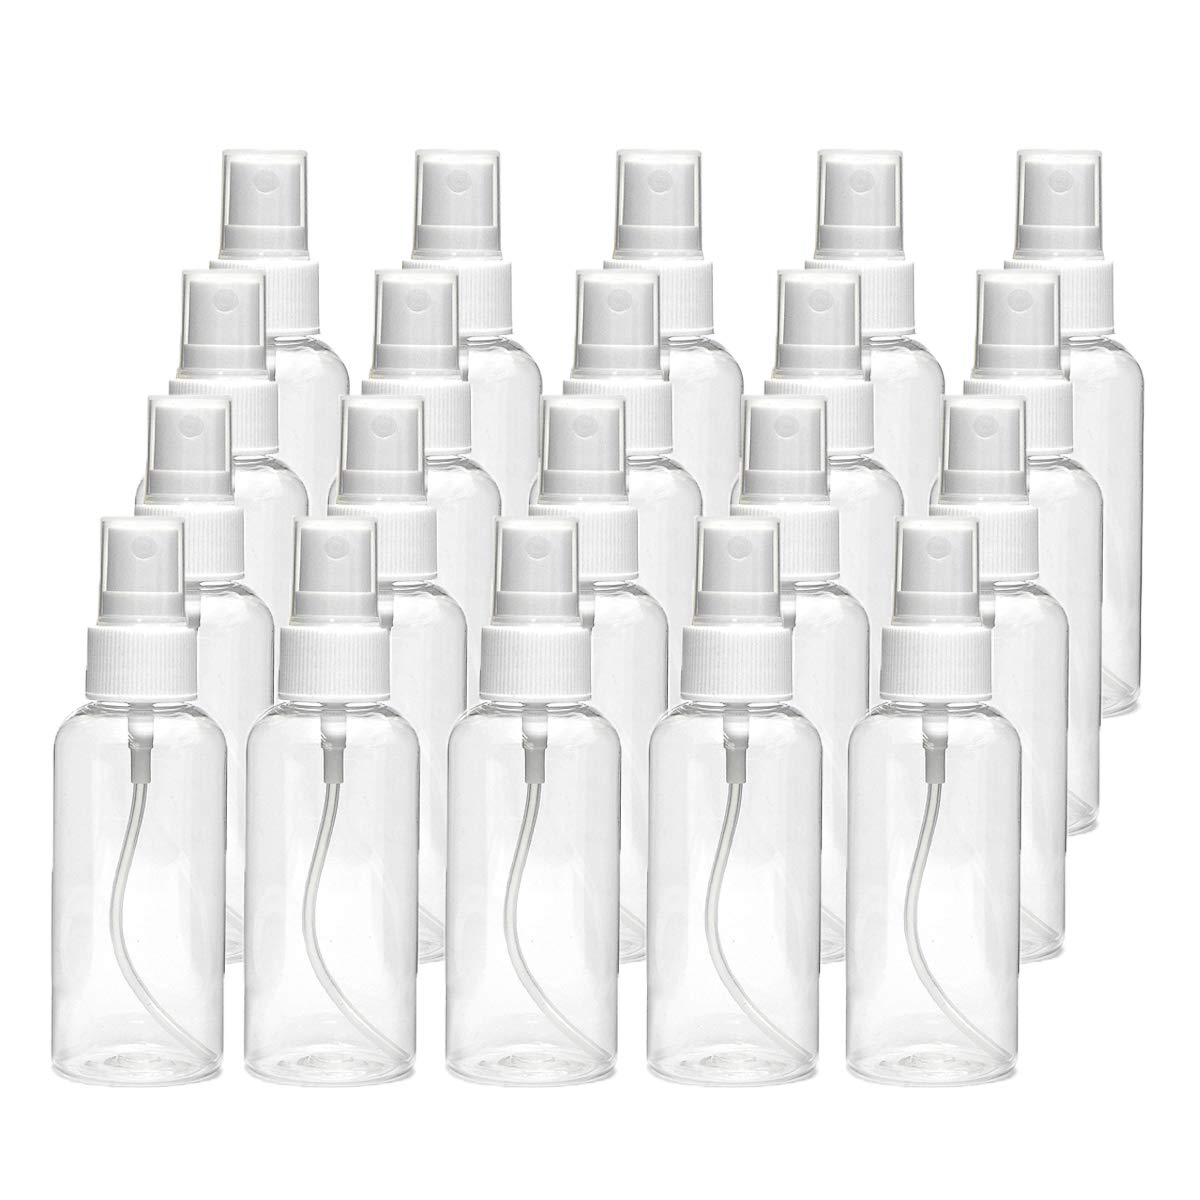 20 PCS 30 ml(1oz) Clear Plastic Mist Spray bottle,Transparent Travel Bottle,Portable Refillable Spray Sprayer Bottle for Travel, Cleaning, Essential Oils by Anyumocz